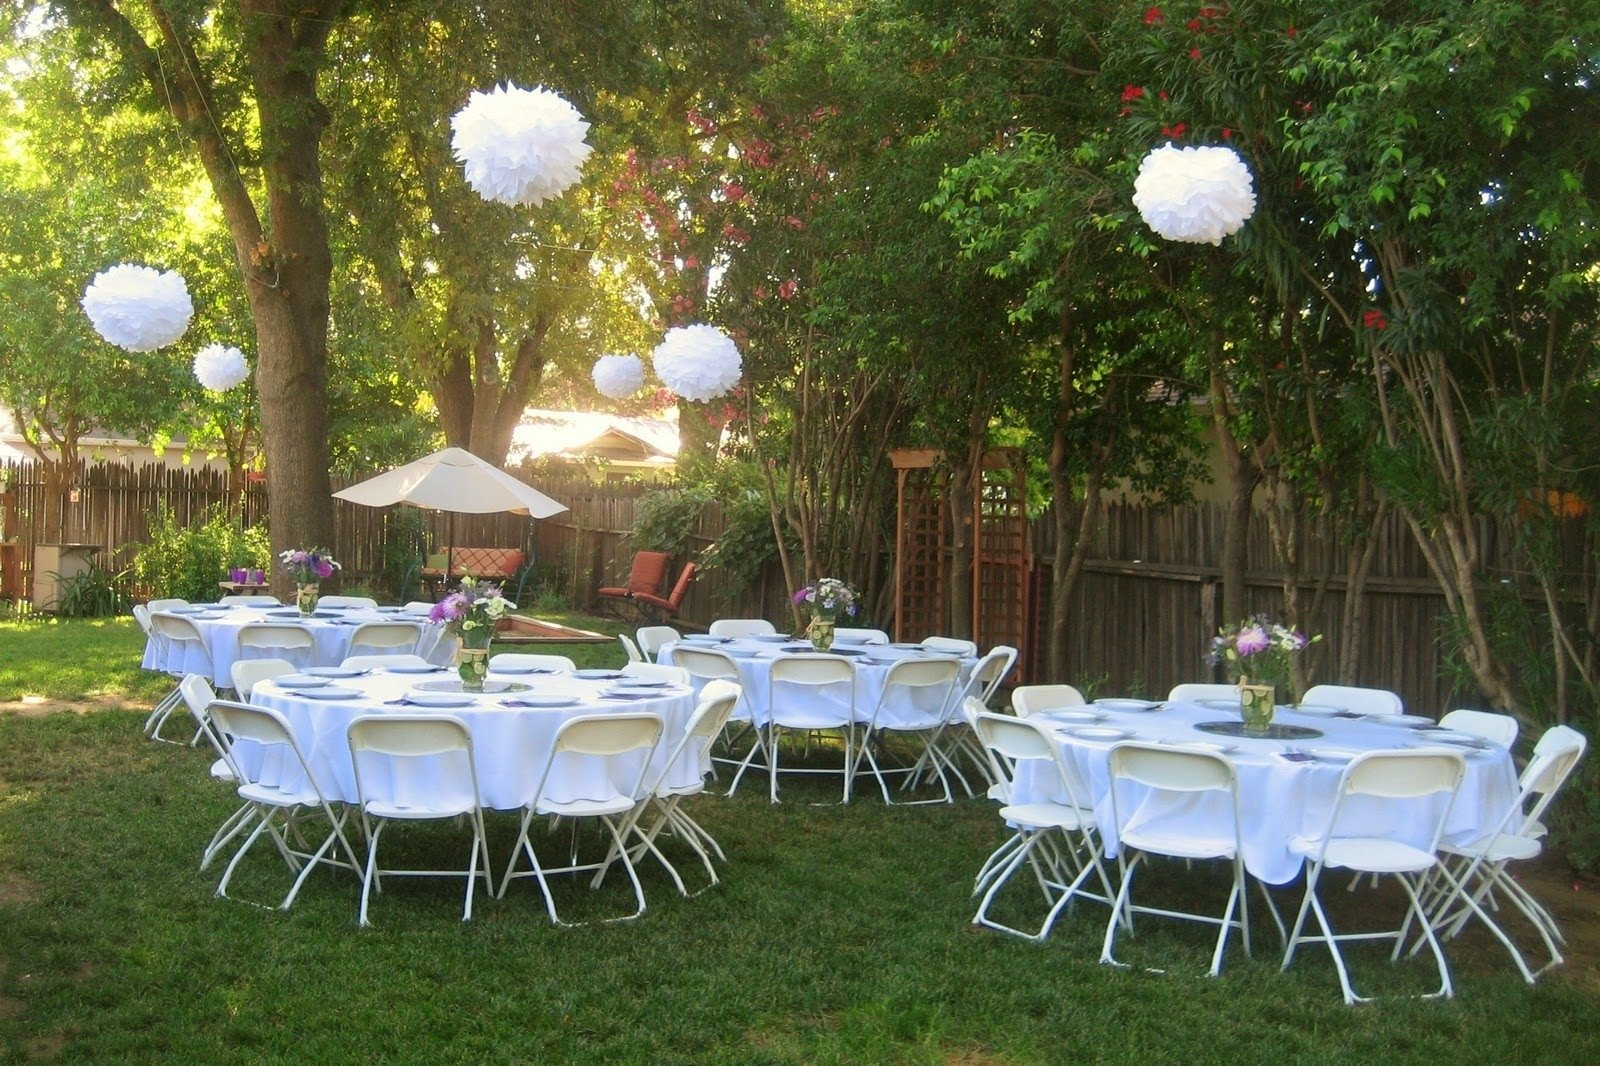 10 Cute Sweet 16 Party Ideas At Home backyard party ideas for sweet 16 nice decoration jeromecrousseau 2020